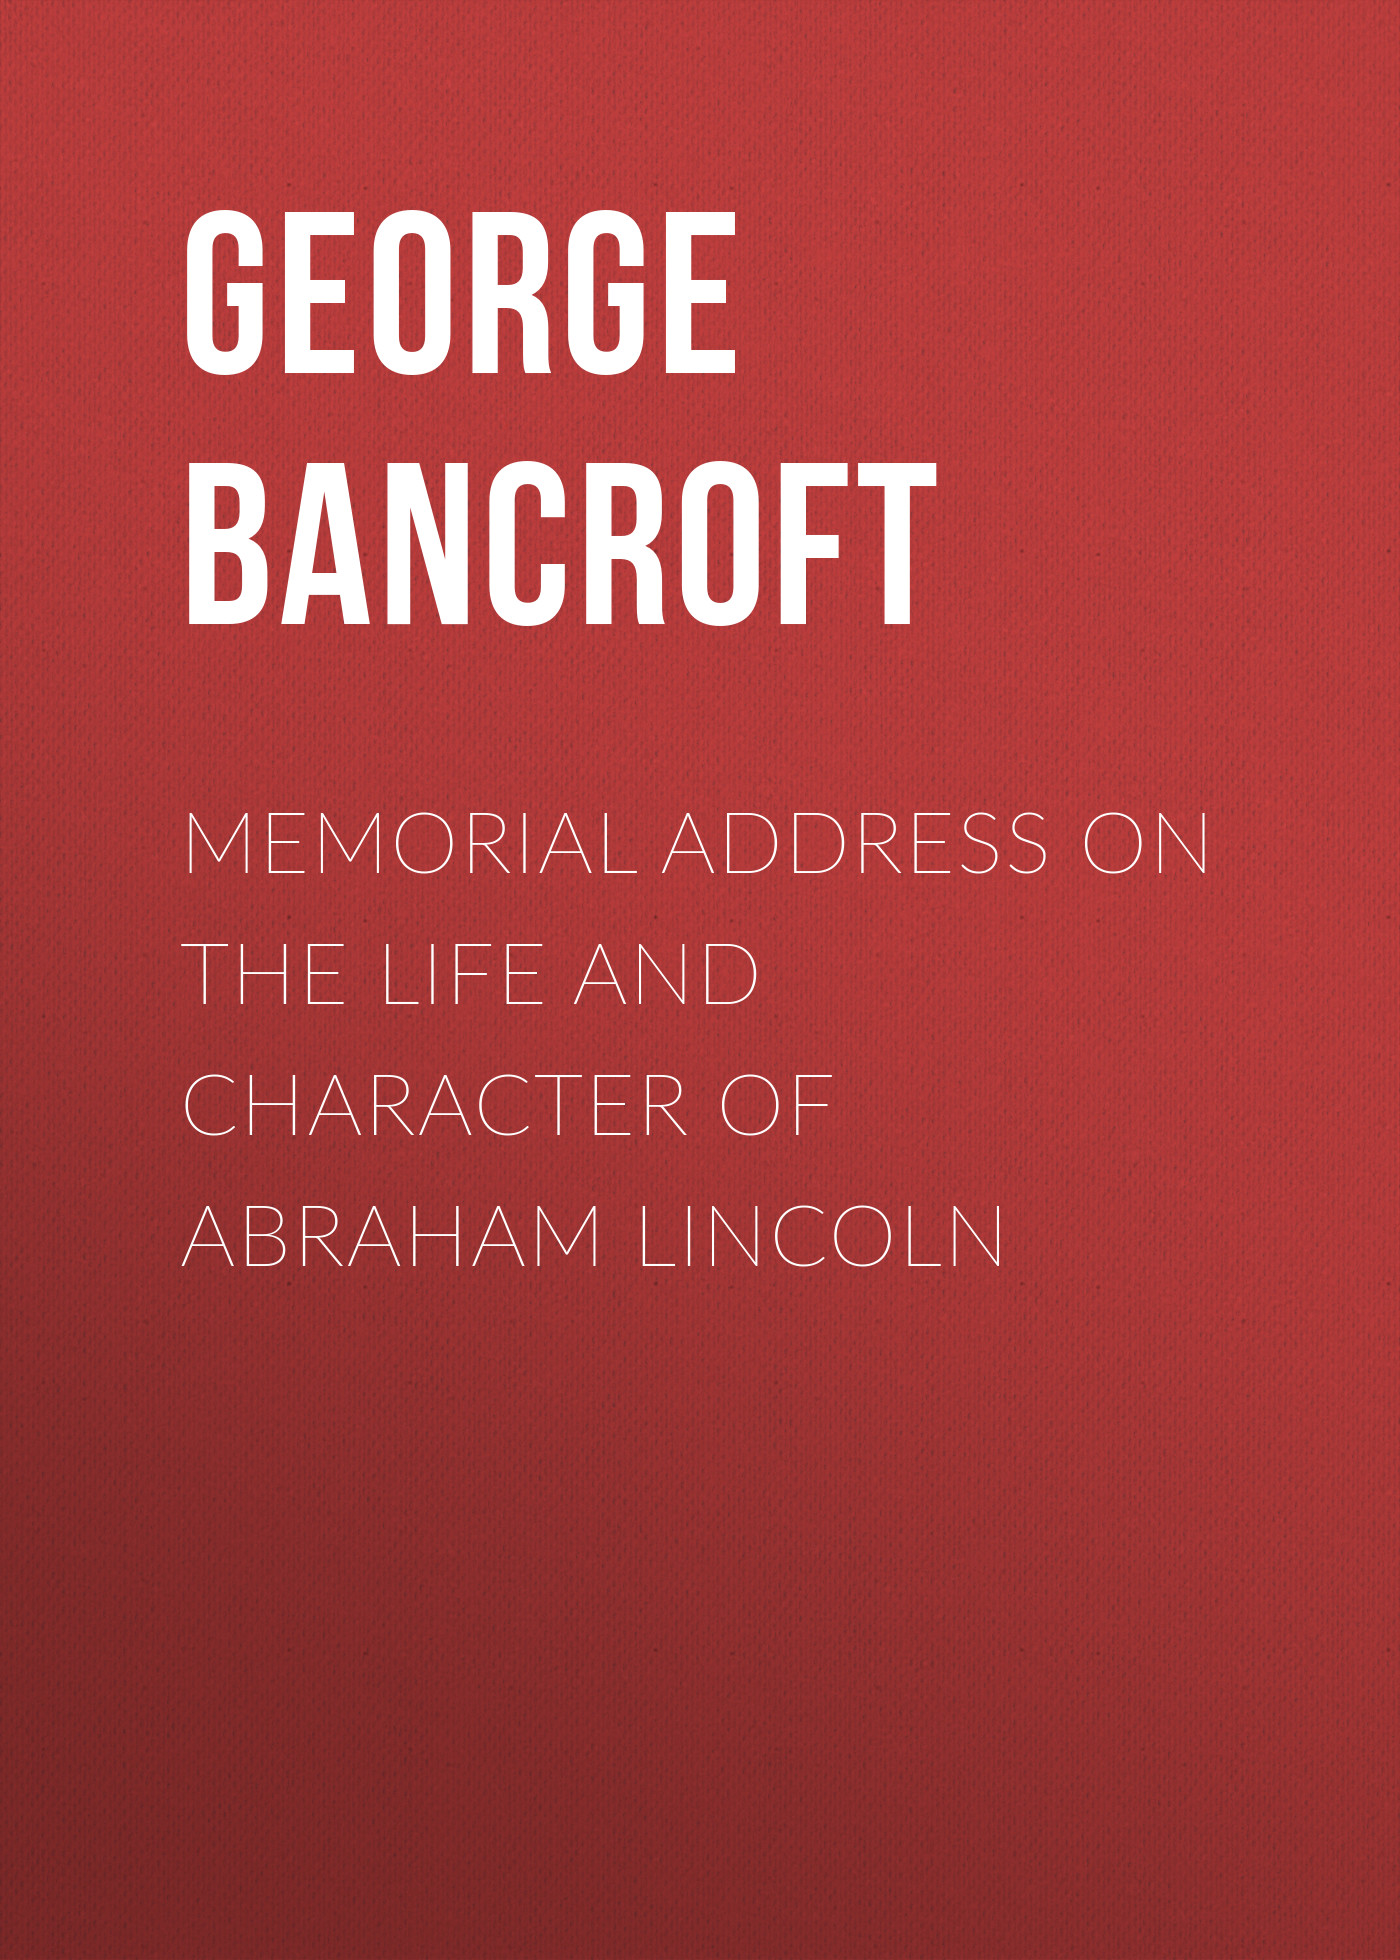 Bancroft George Memorial Address on the Life and Character of Abraham Lincoln чехол книжка interstep vibe pl для apple iphone 7 plus 8 plus серебристый